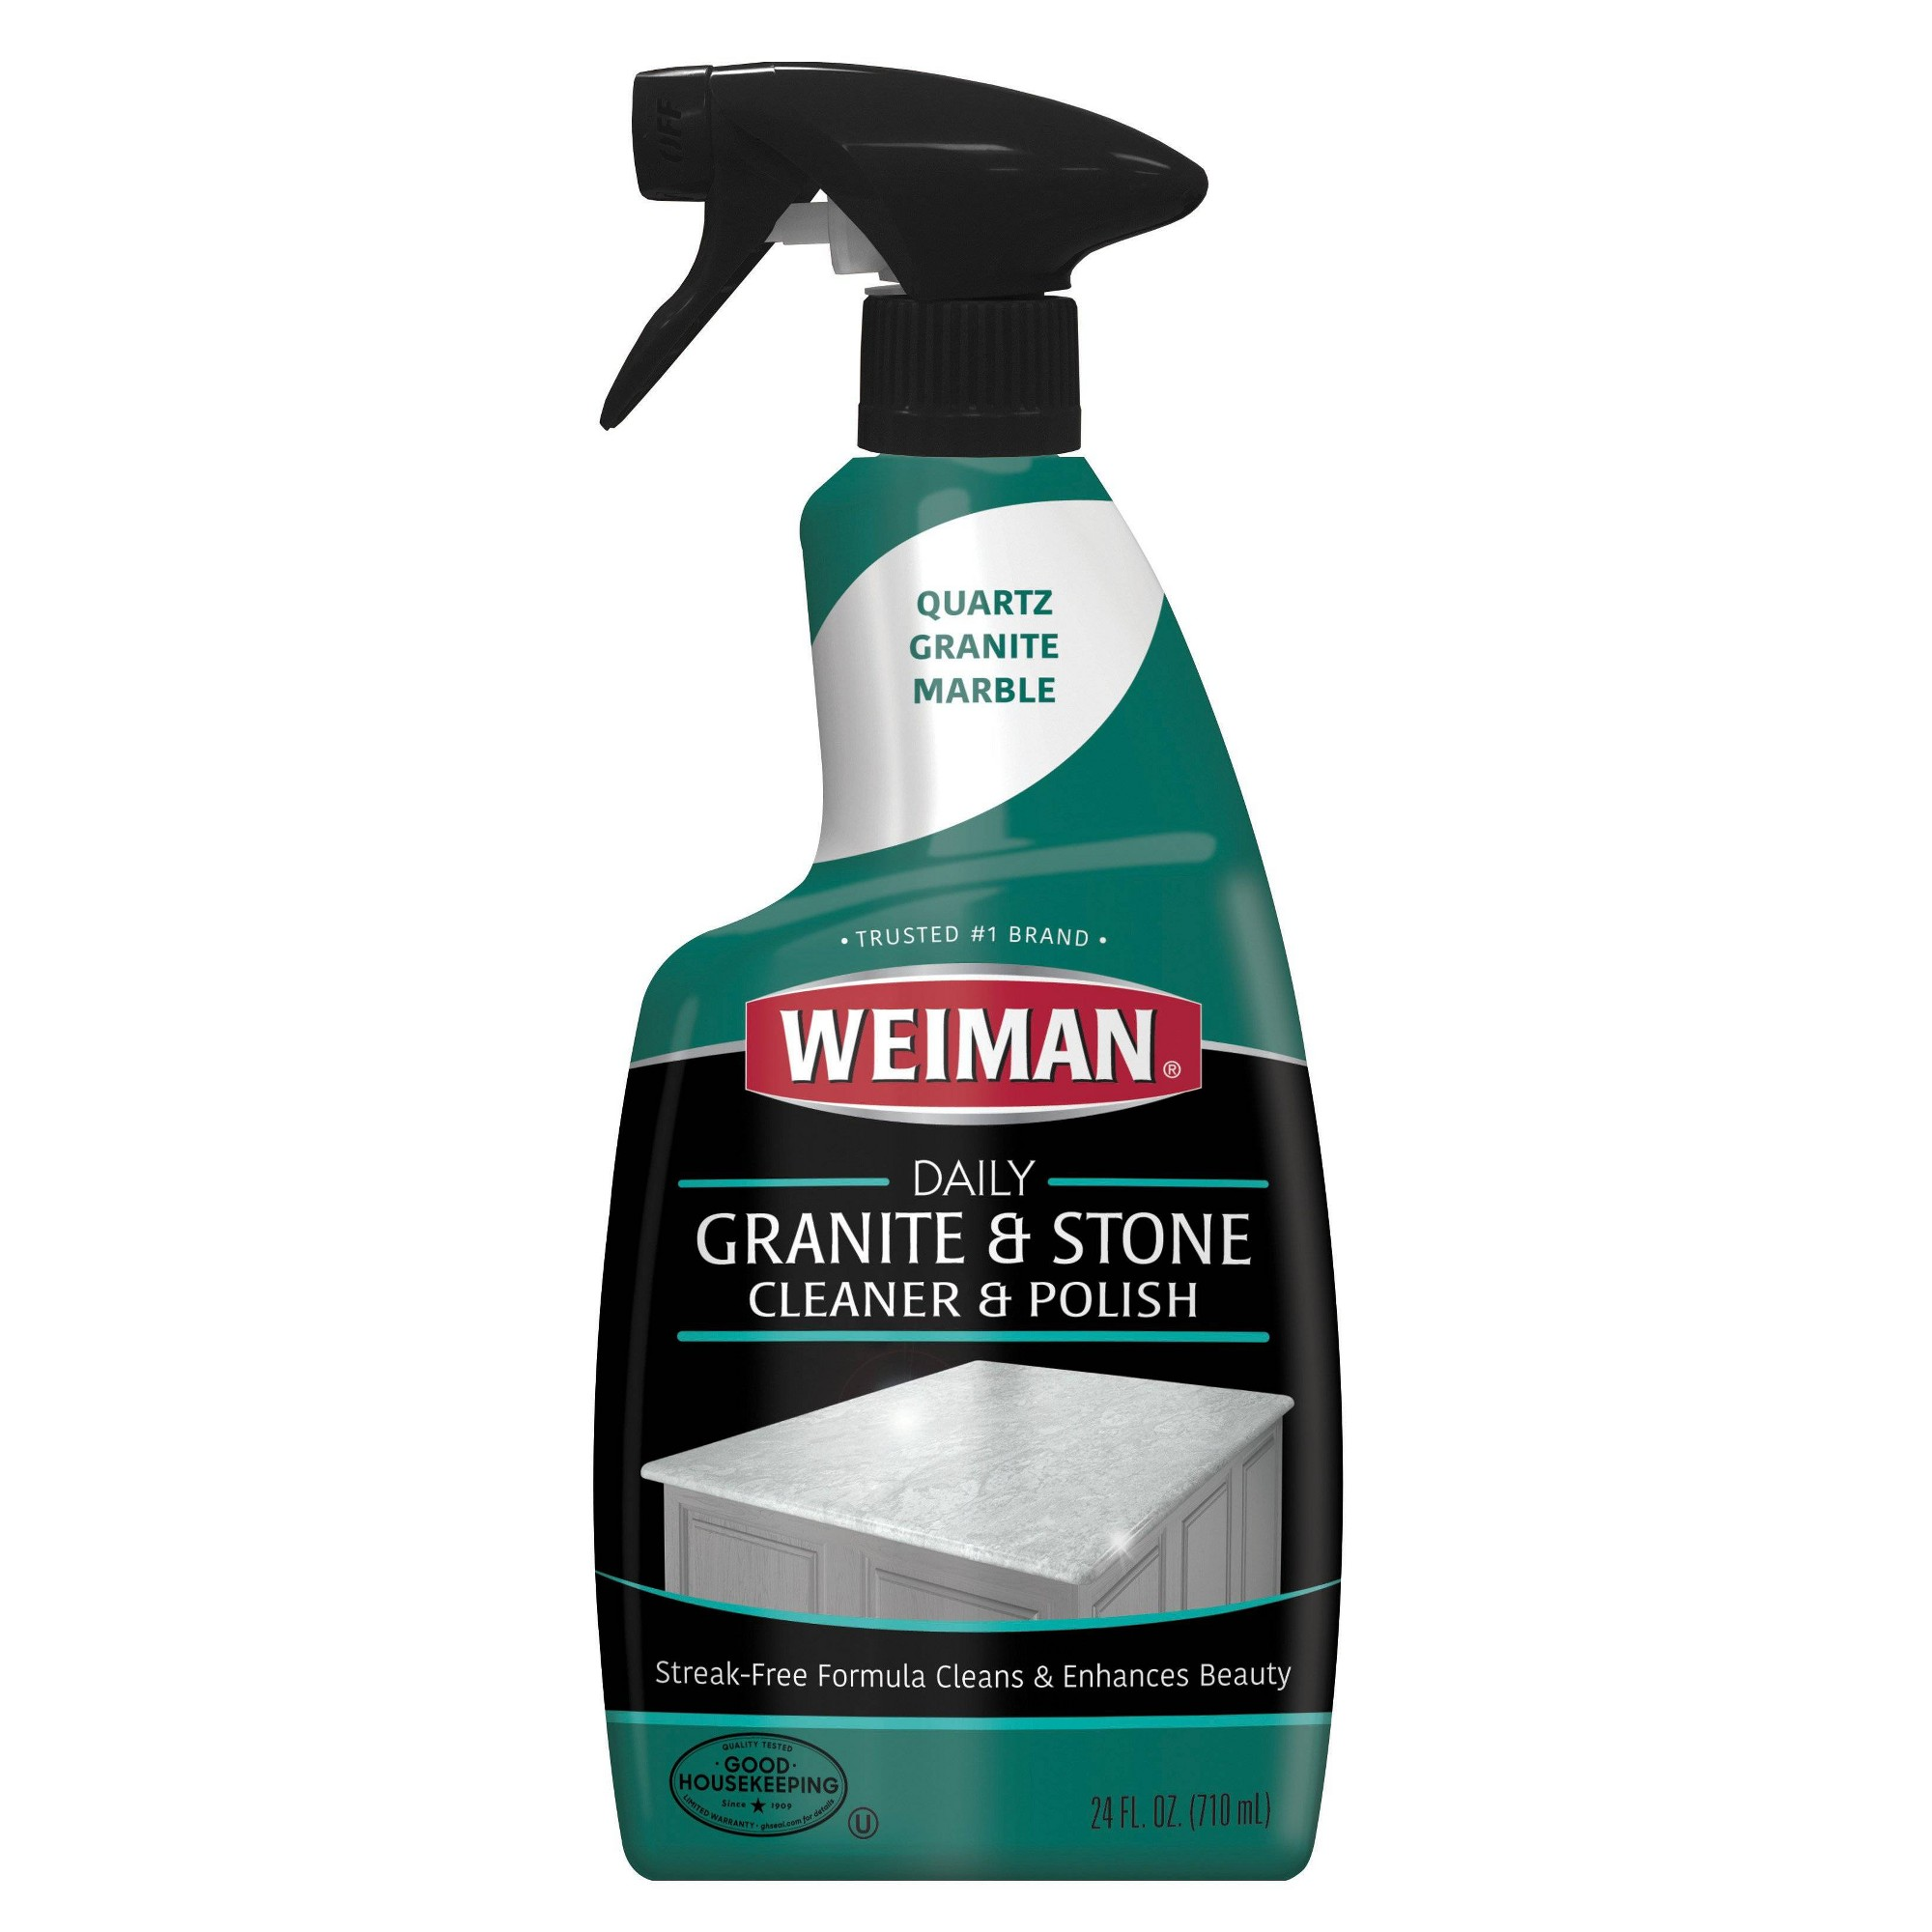 Weiman Granite Cleaner And Polish Spray 24oz Granite Cleaner